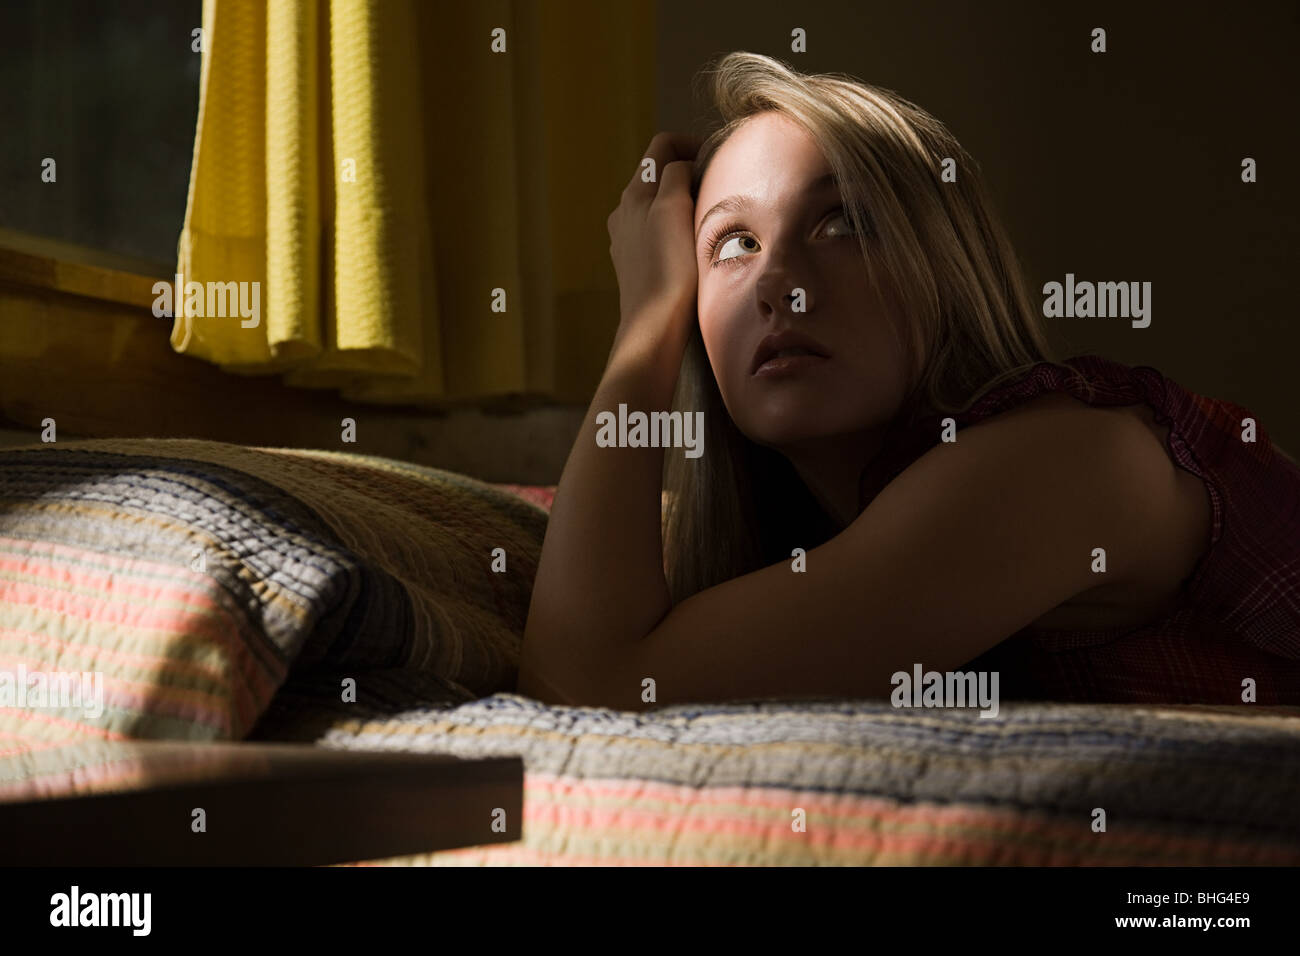 Young woman on bed in shadows - Stock Image